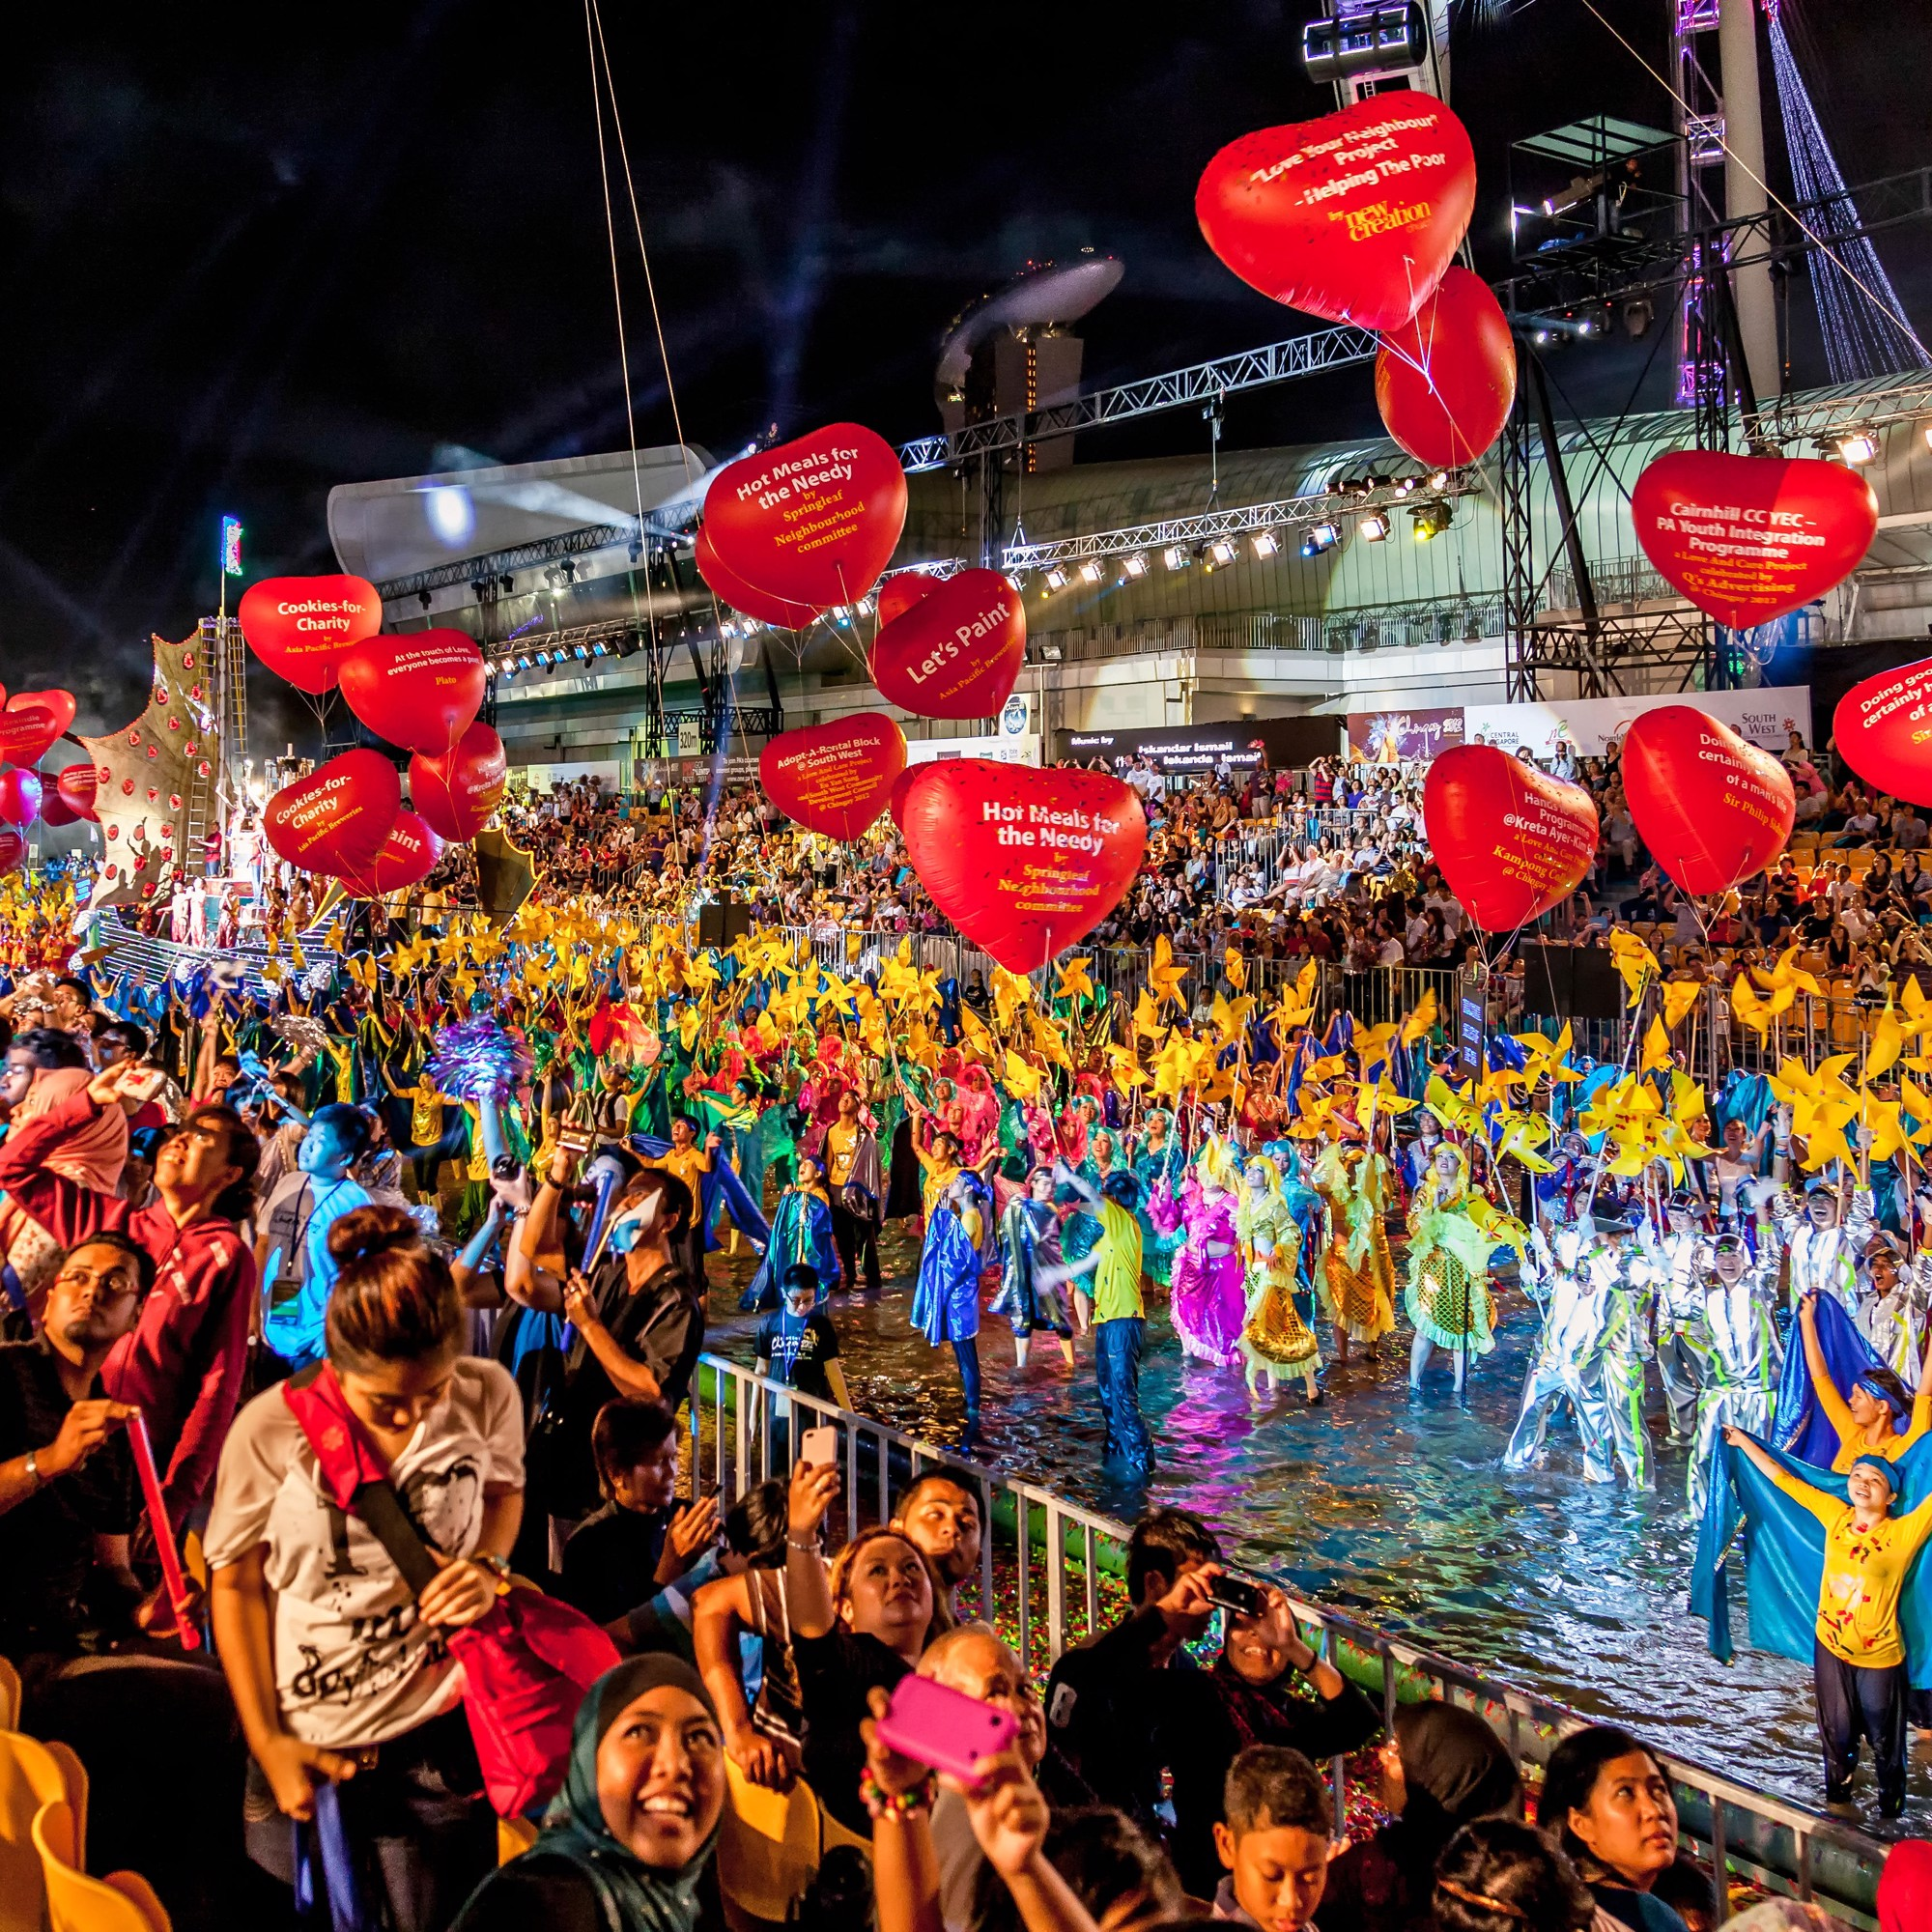 Celebrate Chinese New Year in style at the Chingay Parade in Singapore – the largest of its kind in Asia